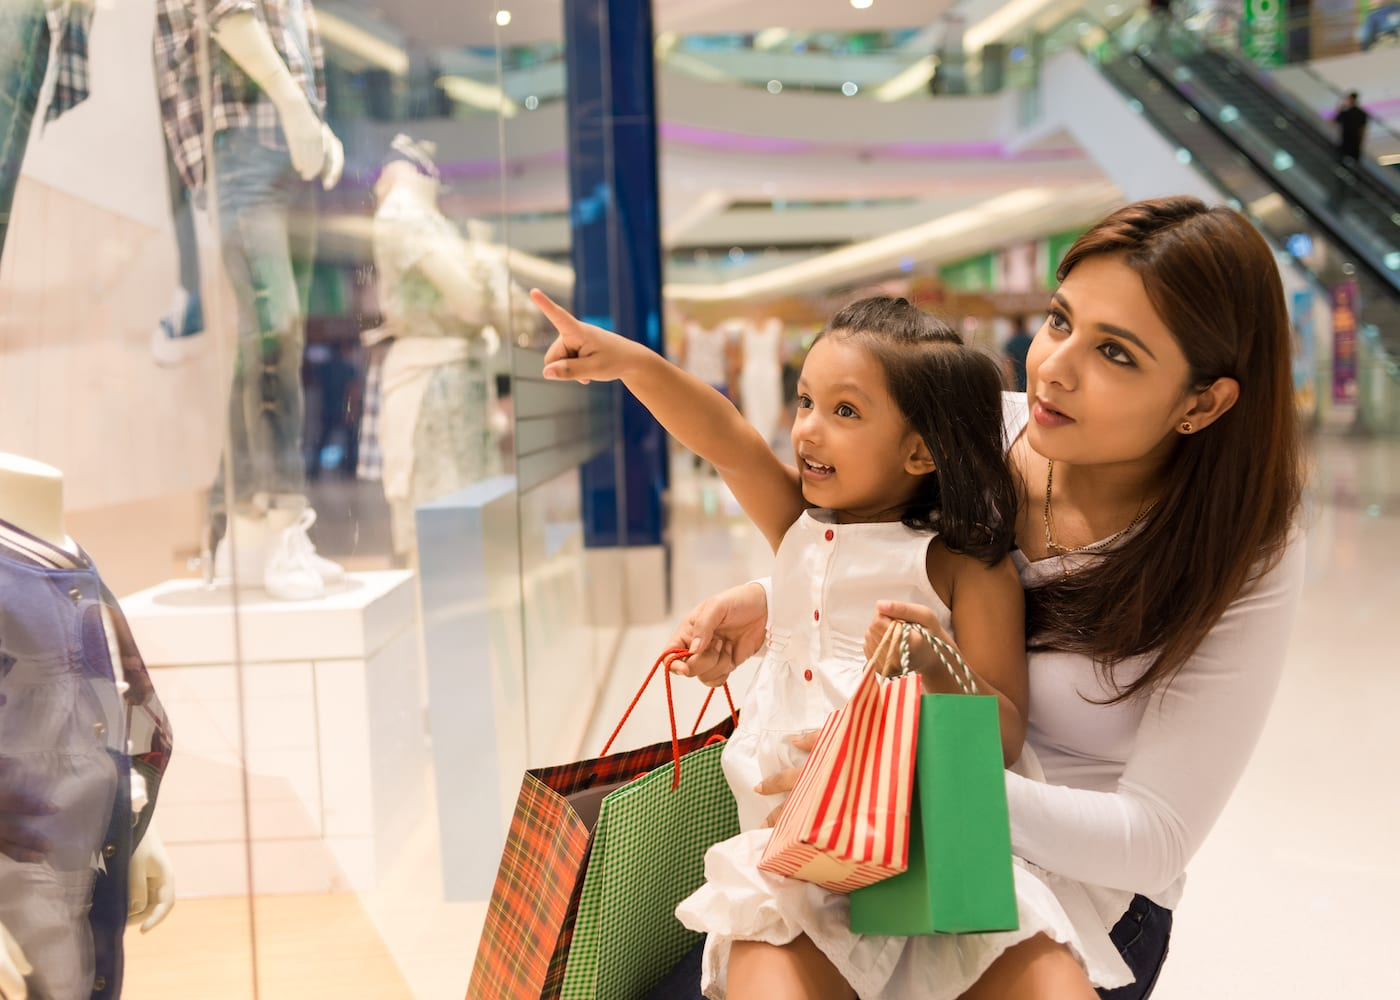 Shopping malls in Singapore: Our fave family-friendly malls with kids' fashion, enrichment centres, nursing rooms and more